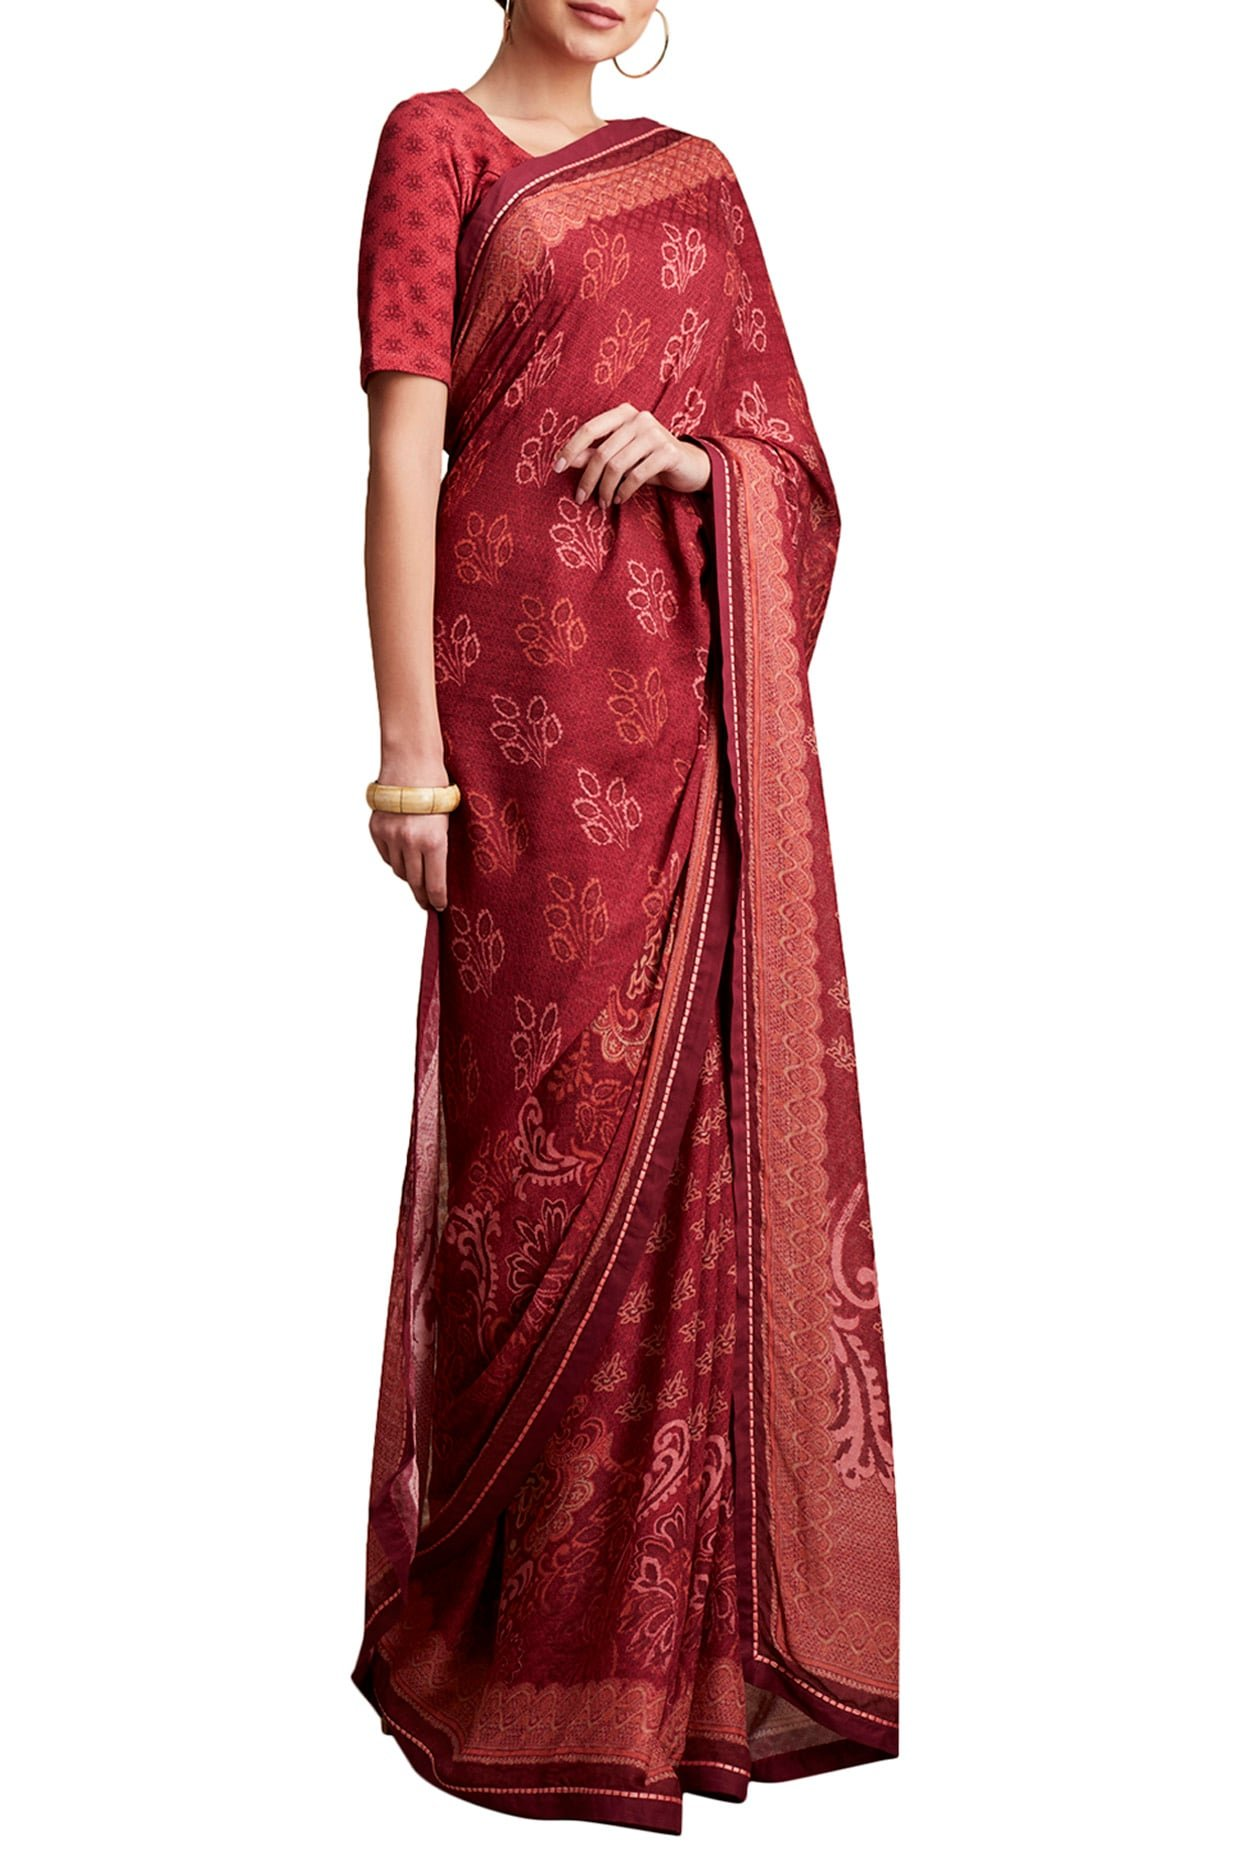 Red Printed Floral Saree